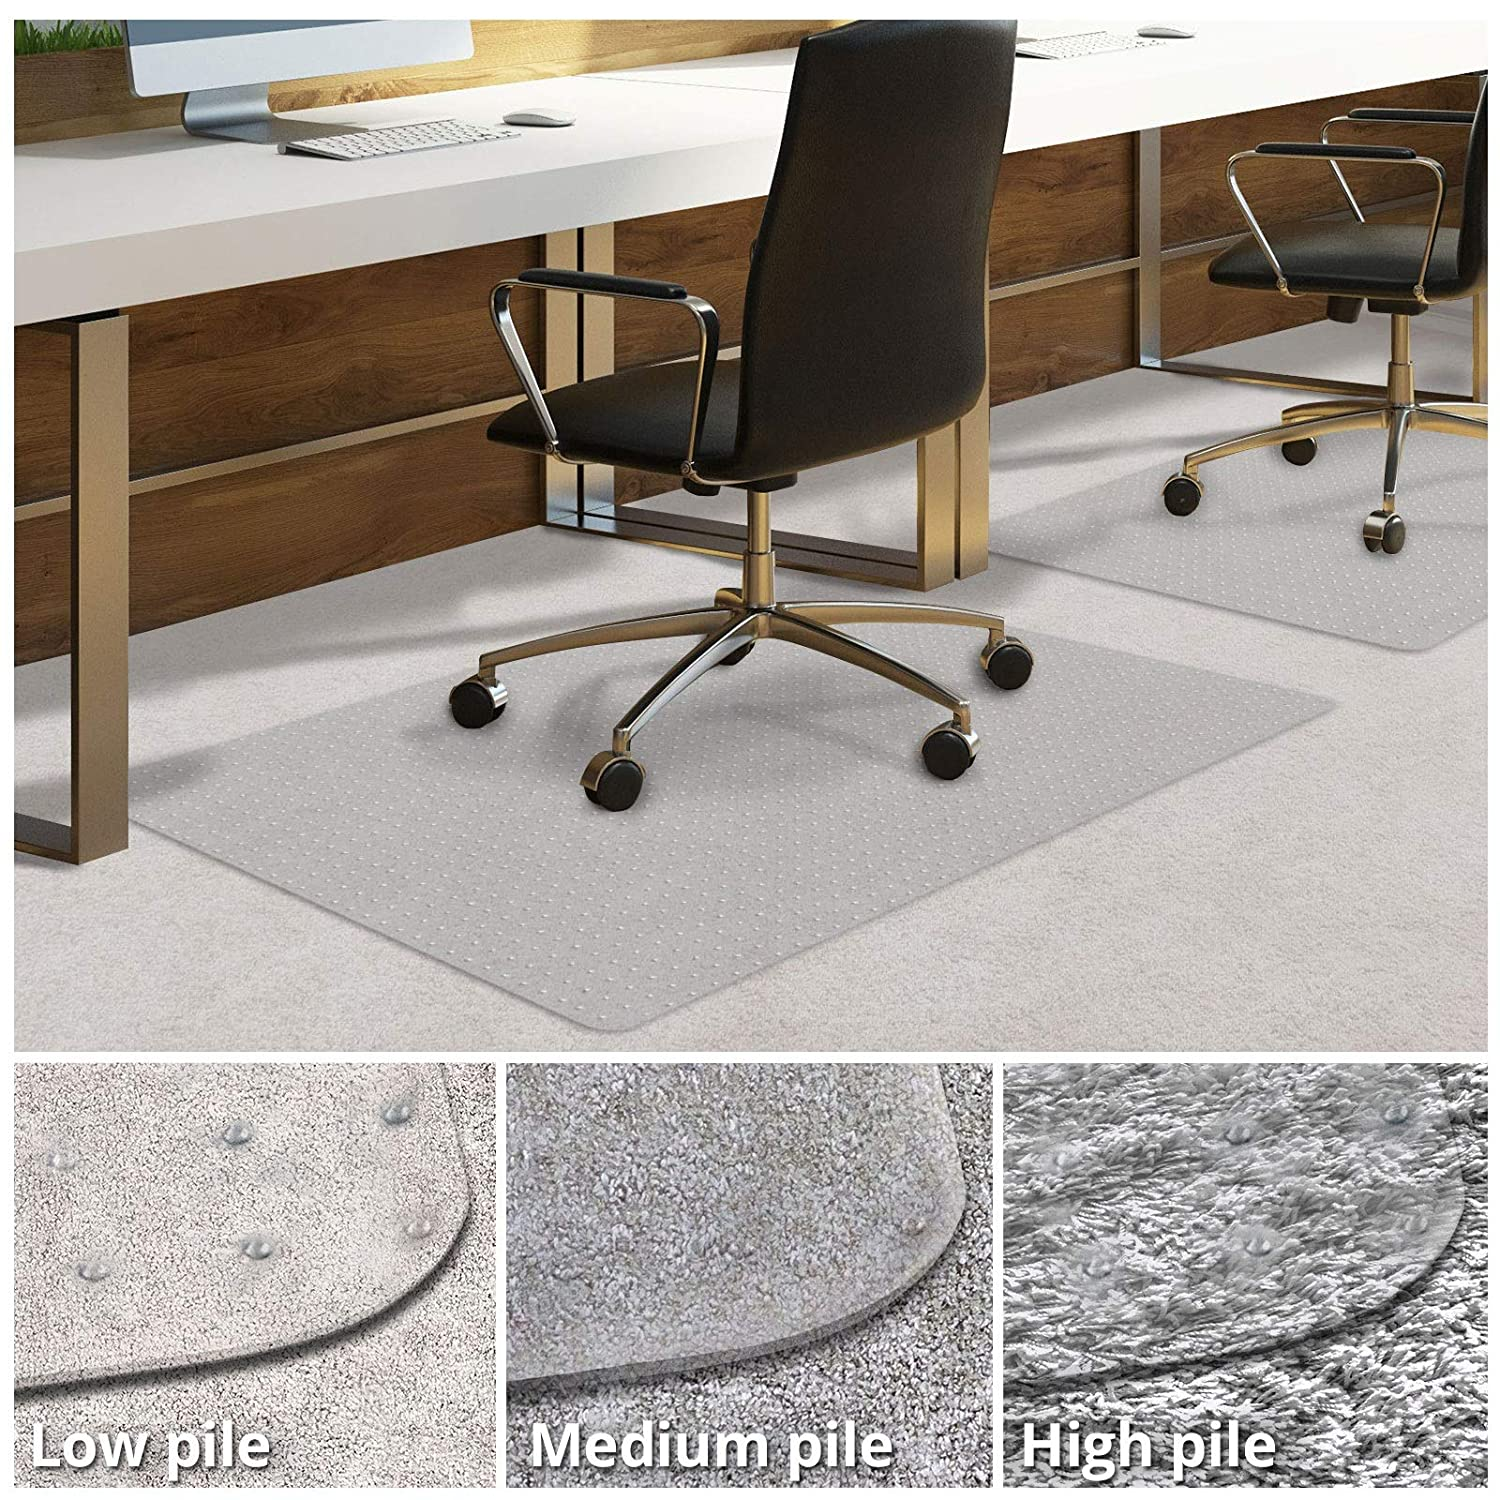 casa pura PVC Chair Mat for Carpet Floor | Floor Protector for High Pile Carpets | 75x120cm | 4mm Thick | Weight Capacity up to 350KG | Multiple Sizes